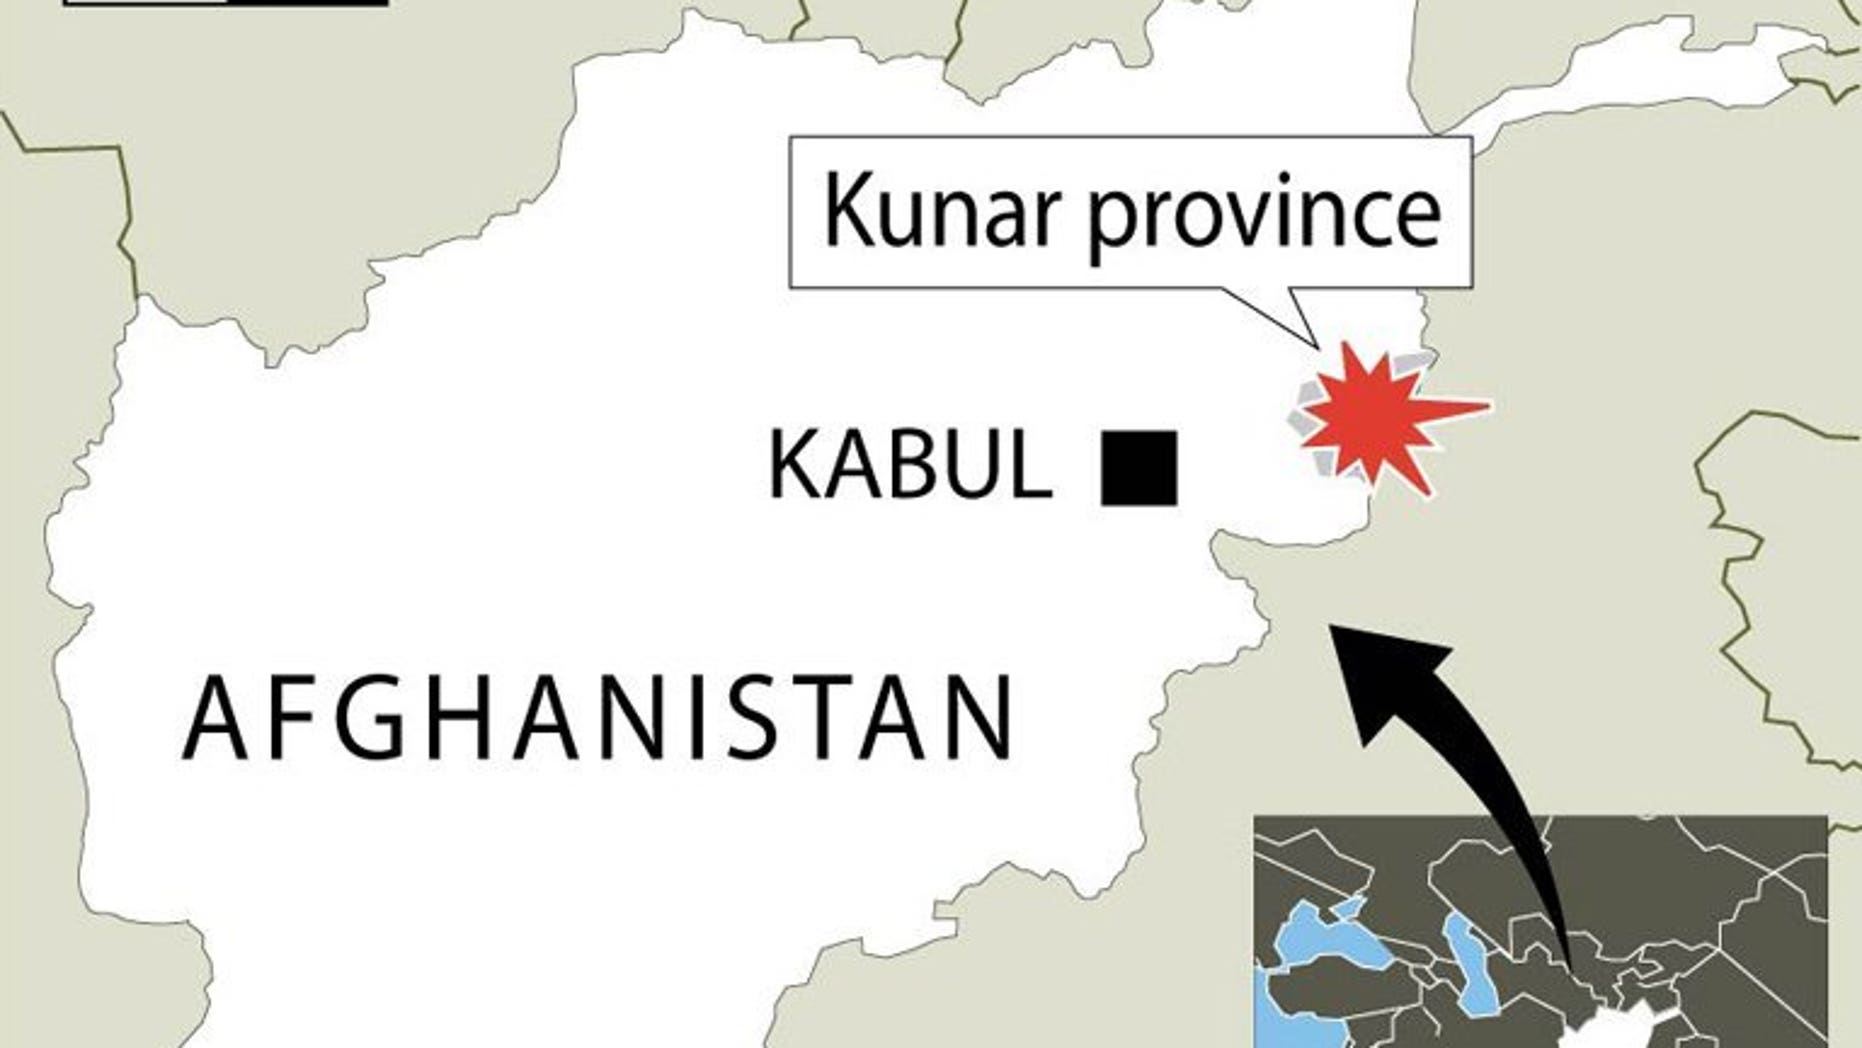 Map showing Kunar province where at least ten civilians have been killed in a NATO airstrike on a pickup truck carrying women and children, according to Afghan provincial officials.